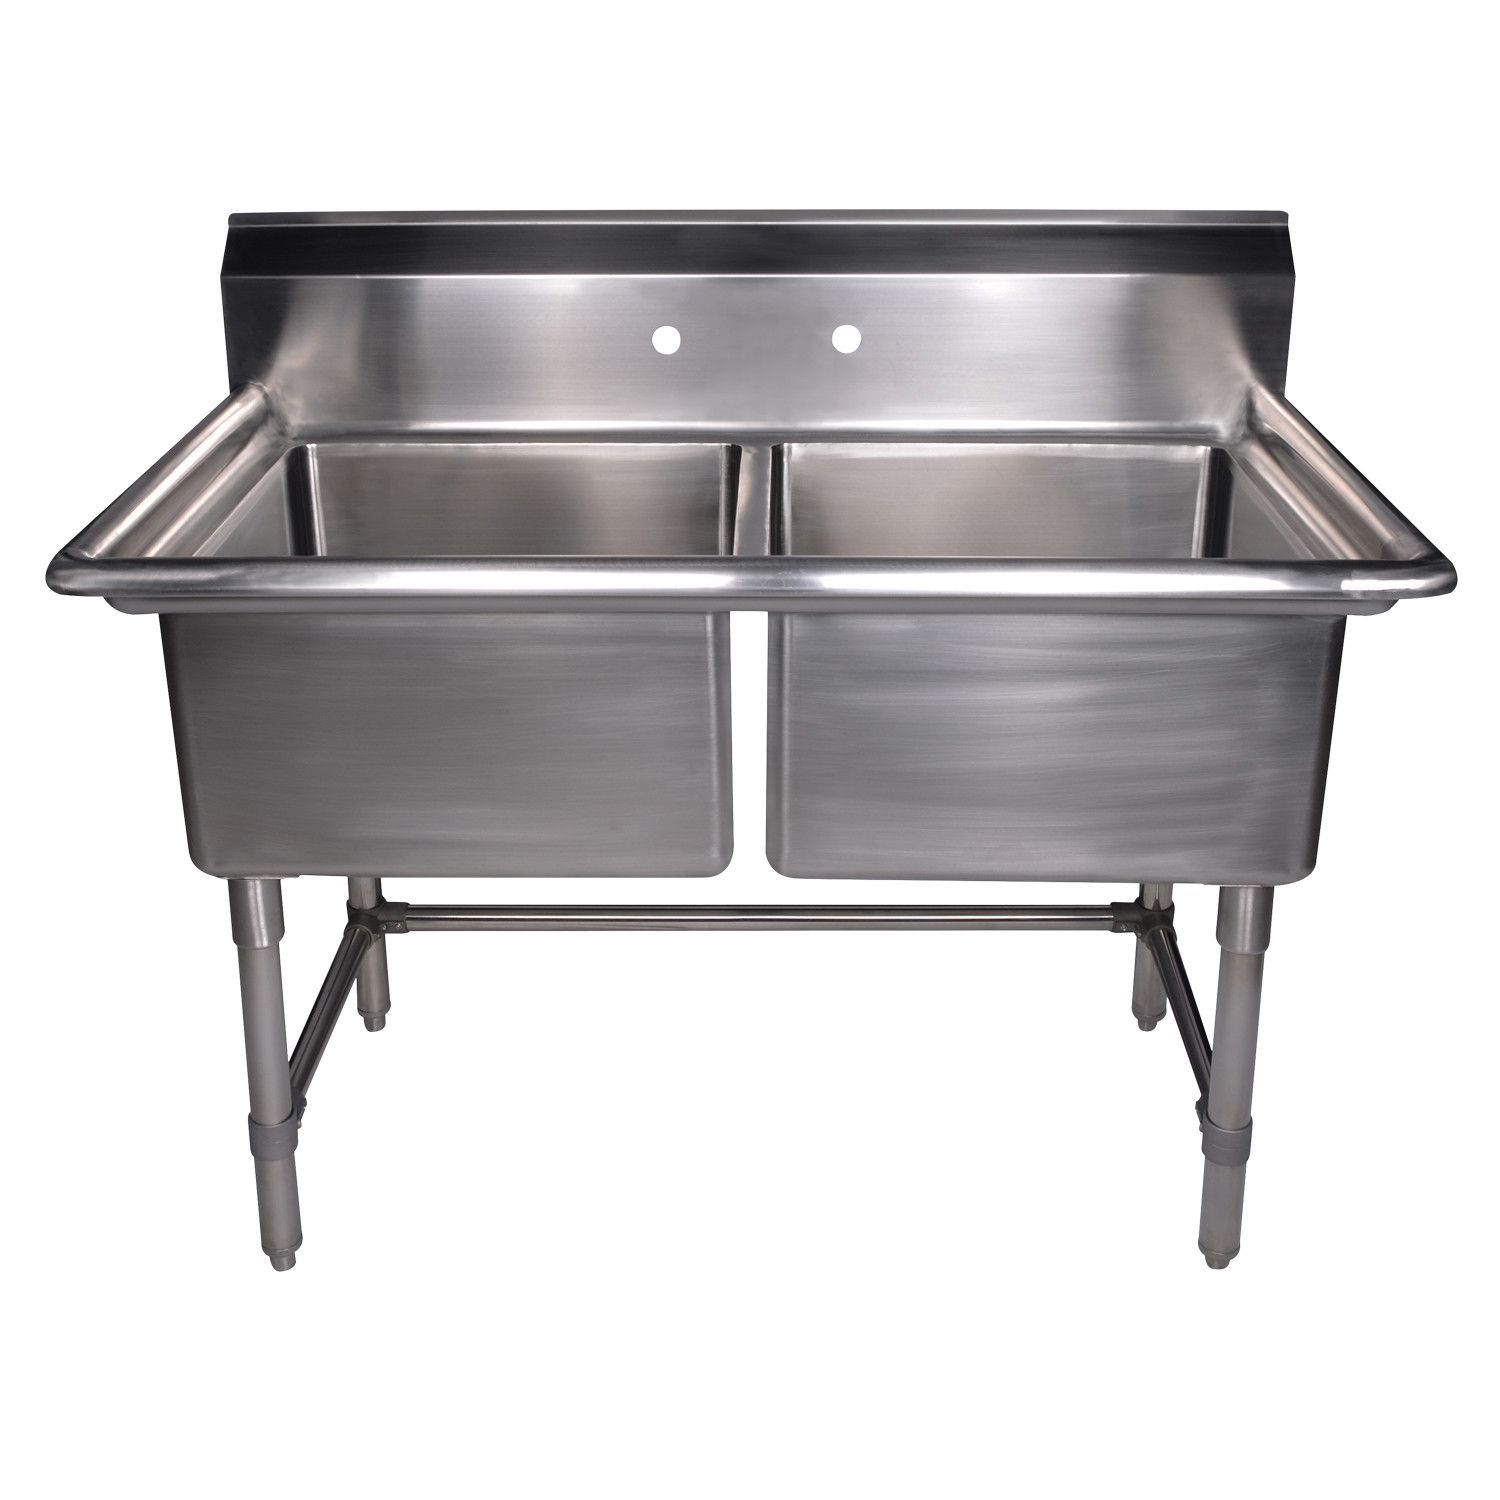 Buy Whitehaus Whlsdb4020 Np 40 Brushed Stainless Steel Two Bowl